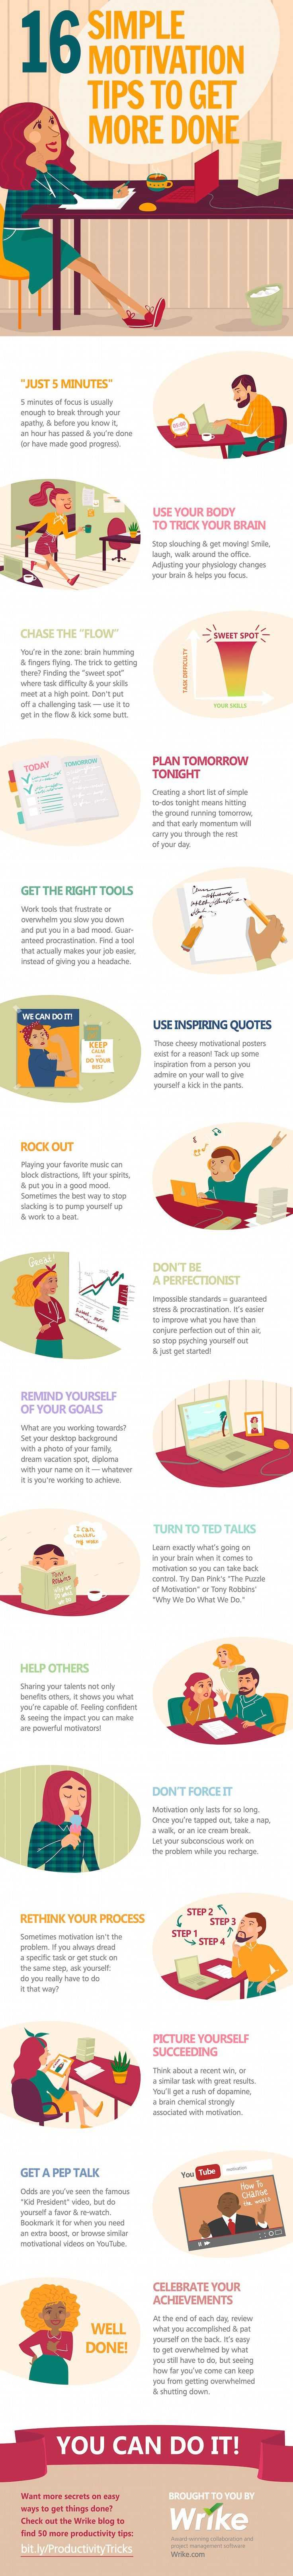 16 Easy To Try Motivation Tips To Get More Done